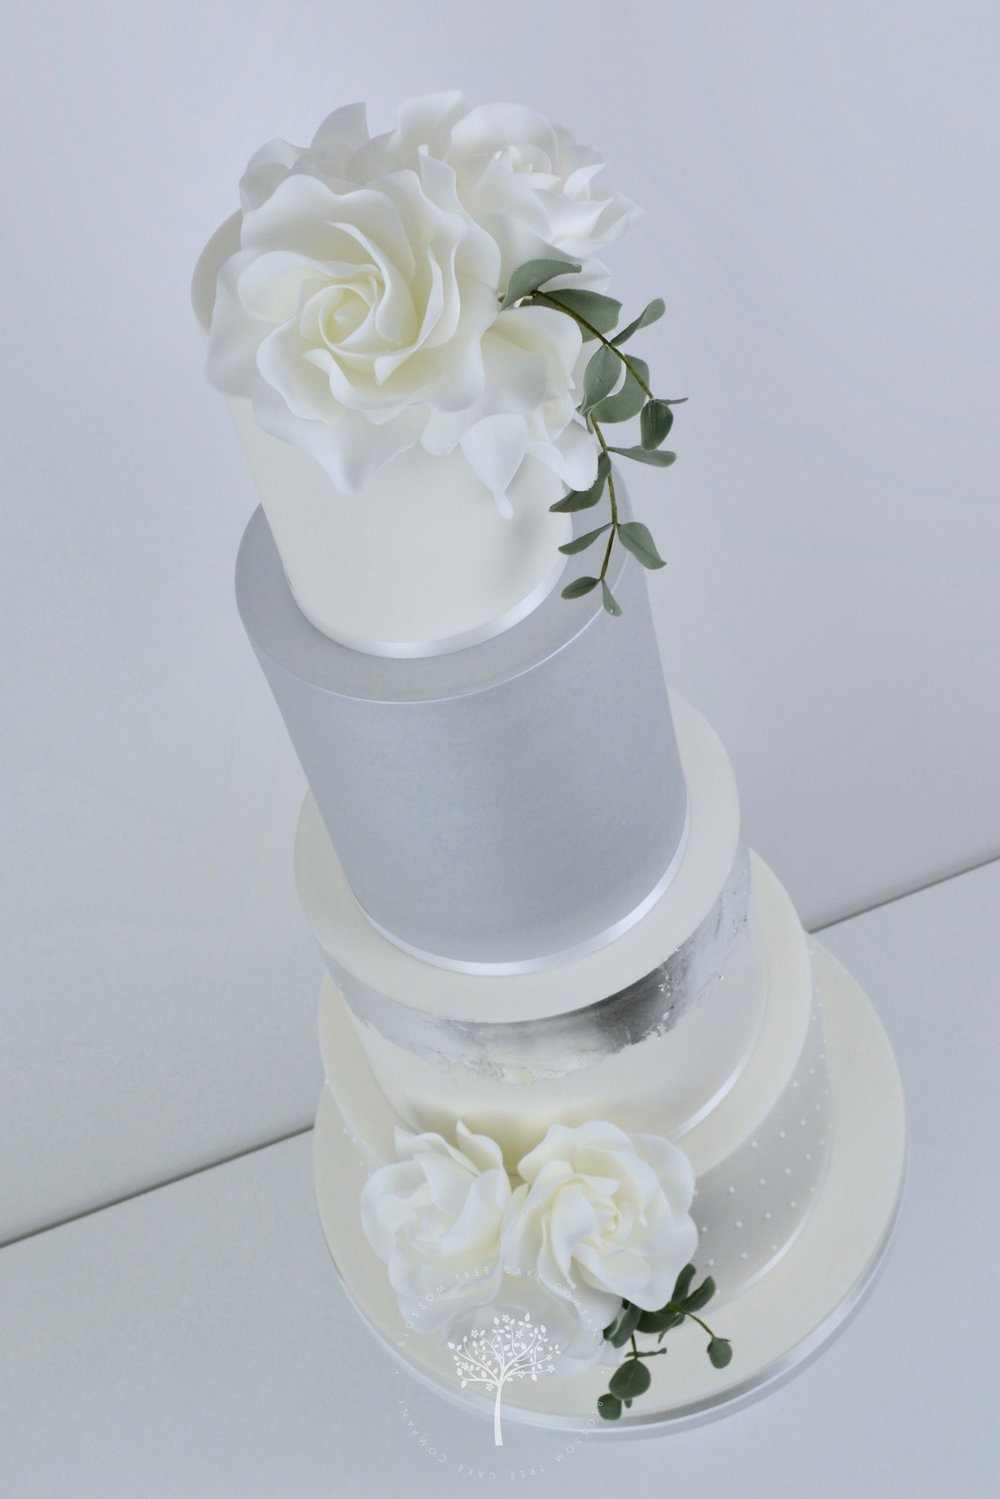 Roses and Silver Lustre wedding cake by Blossom Tree Cake Company Harrogate North Yorkshire - angle.jpg